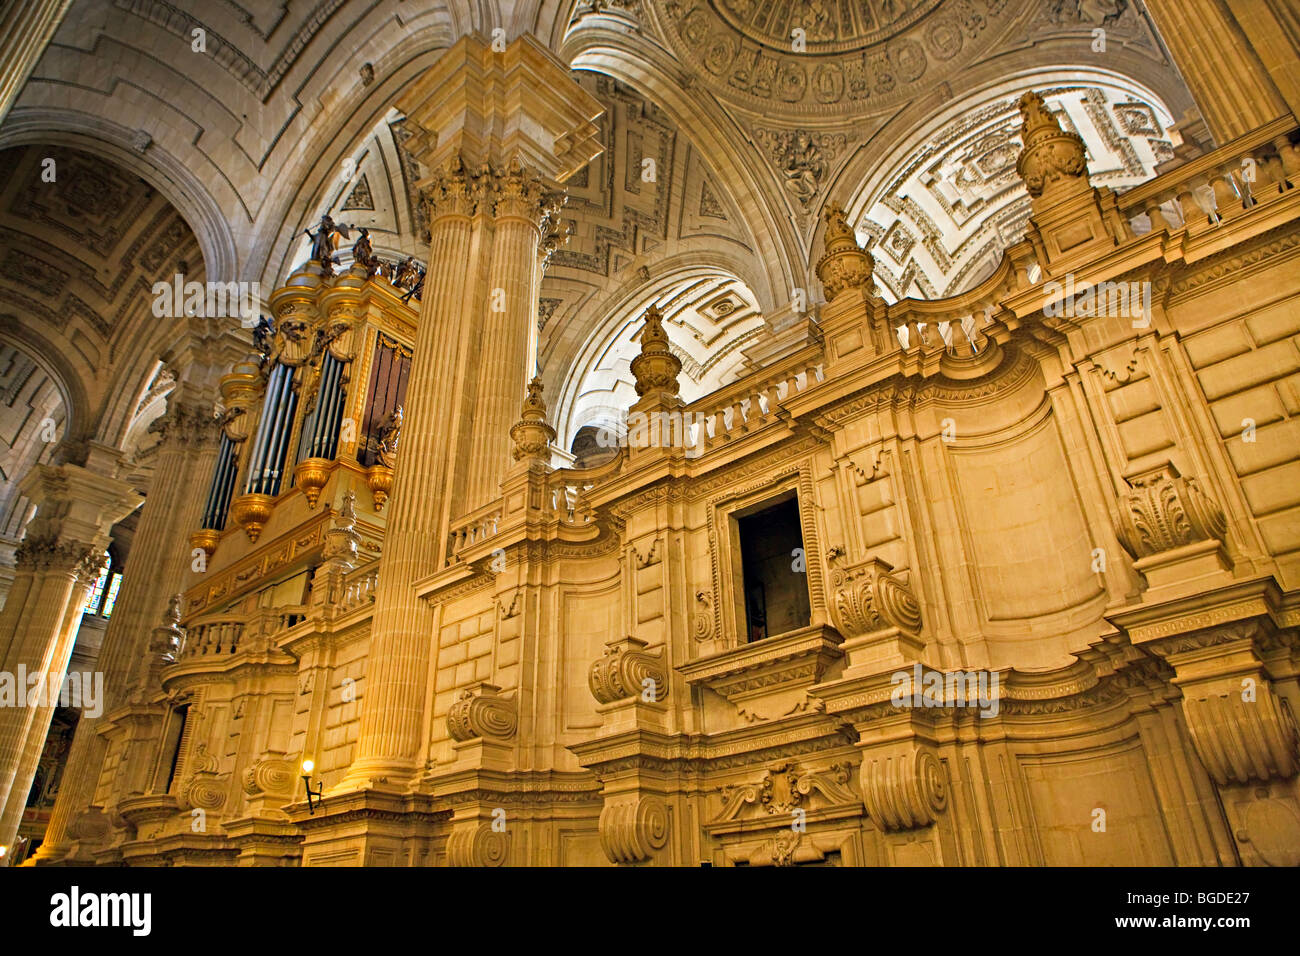 Interior of the Cathedral of Jaen, Sagrario District, City of Jaen, Province of Jaen, Andalusia (Andalucia), Spain, - Stock Image